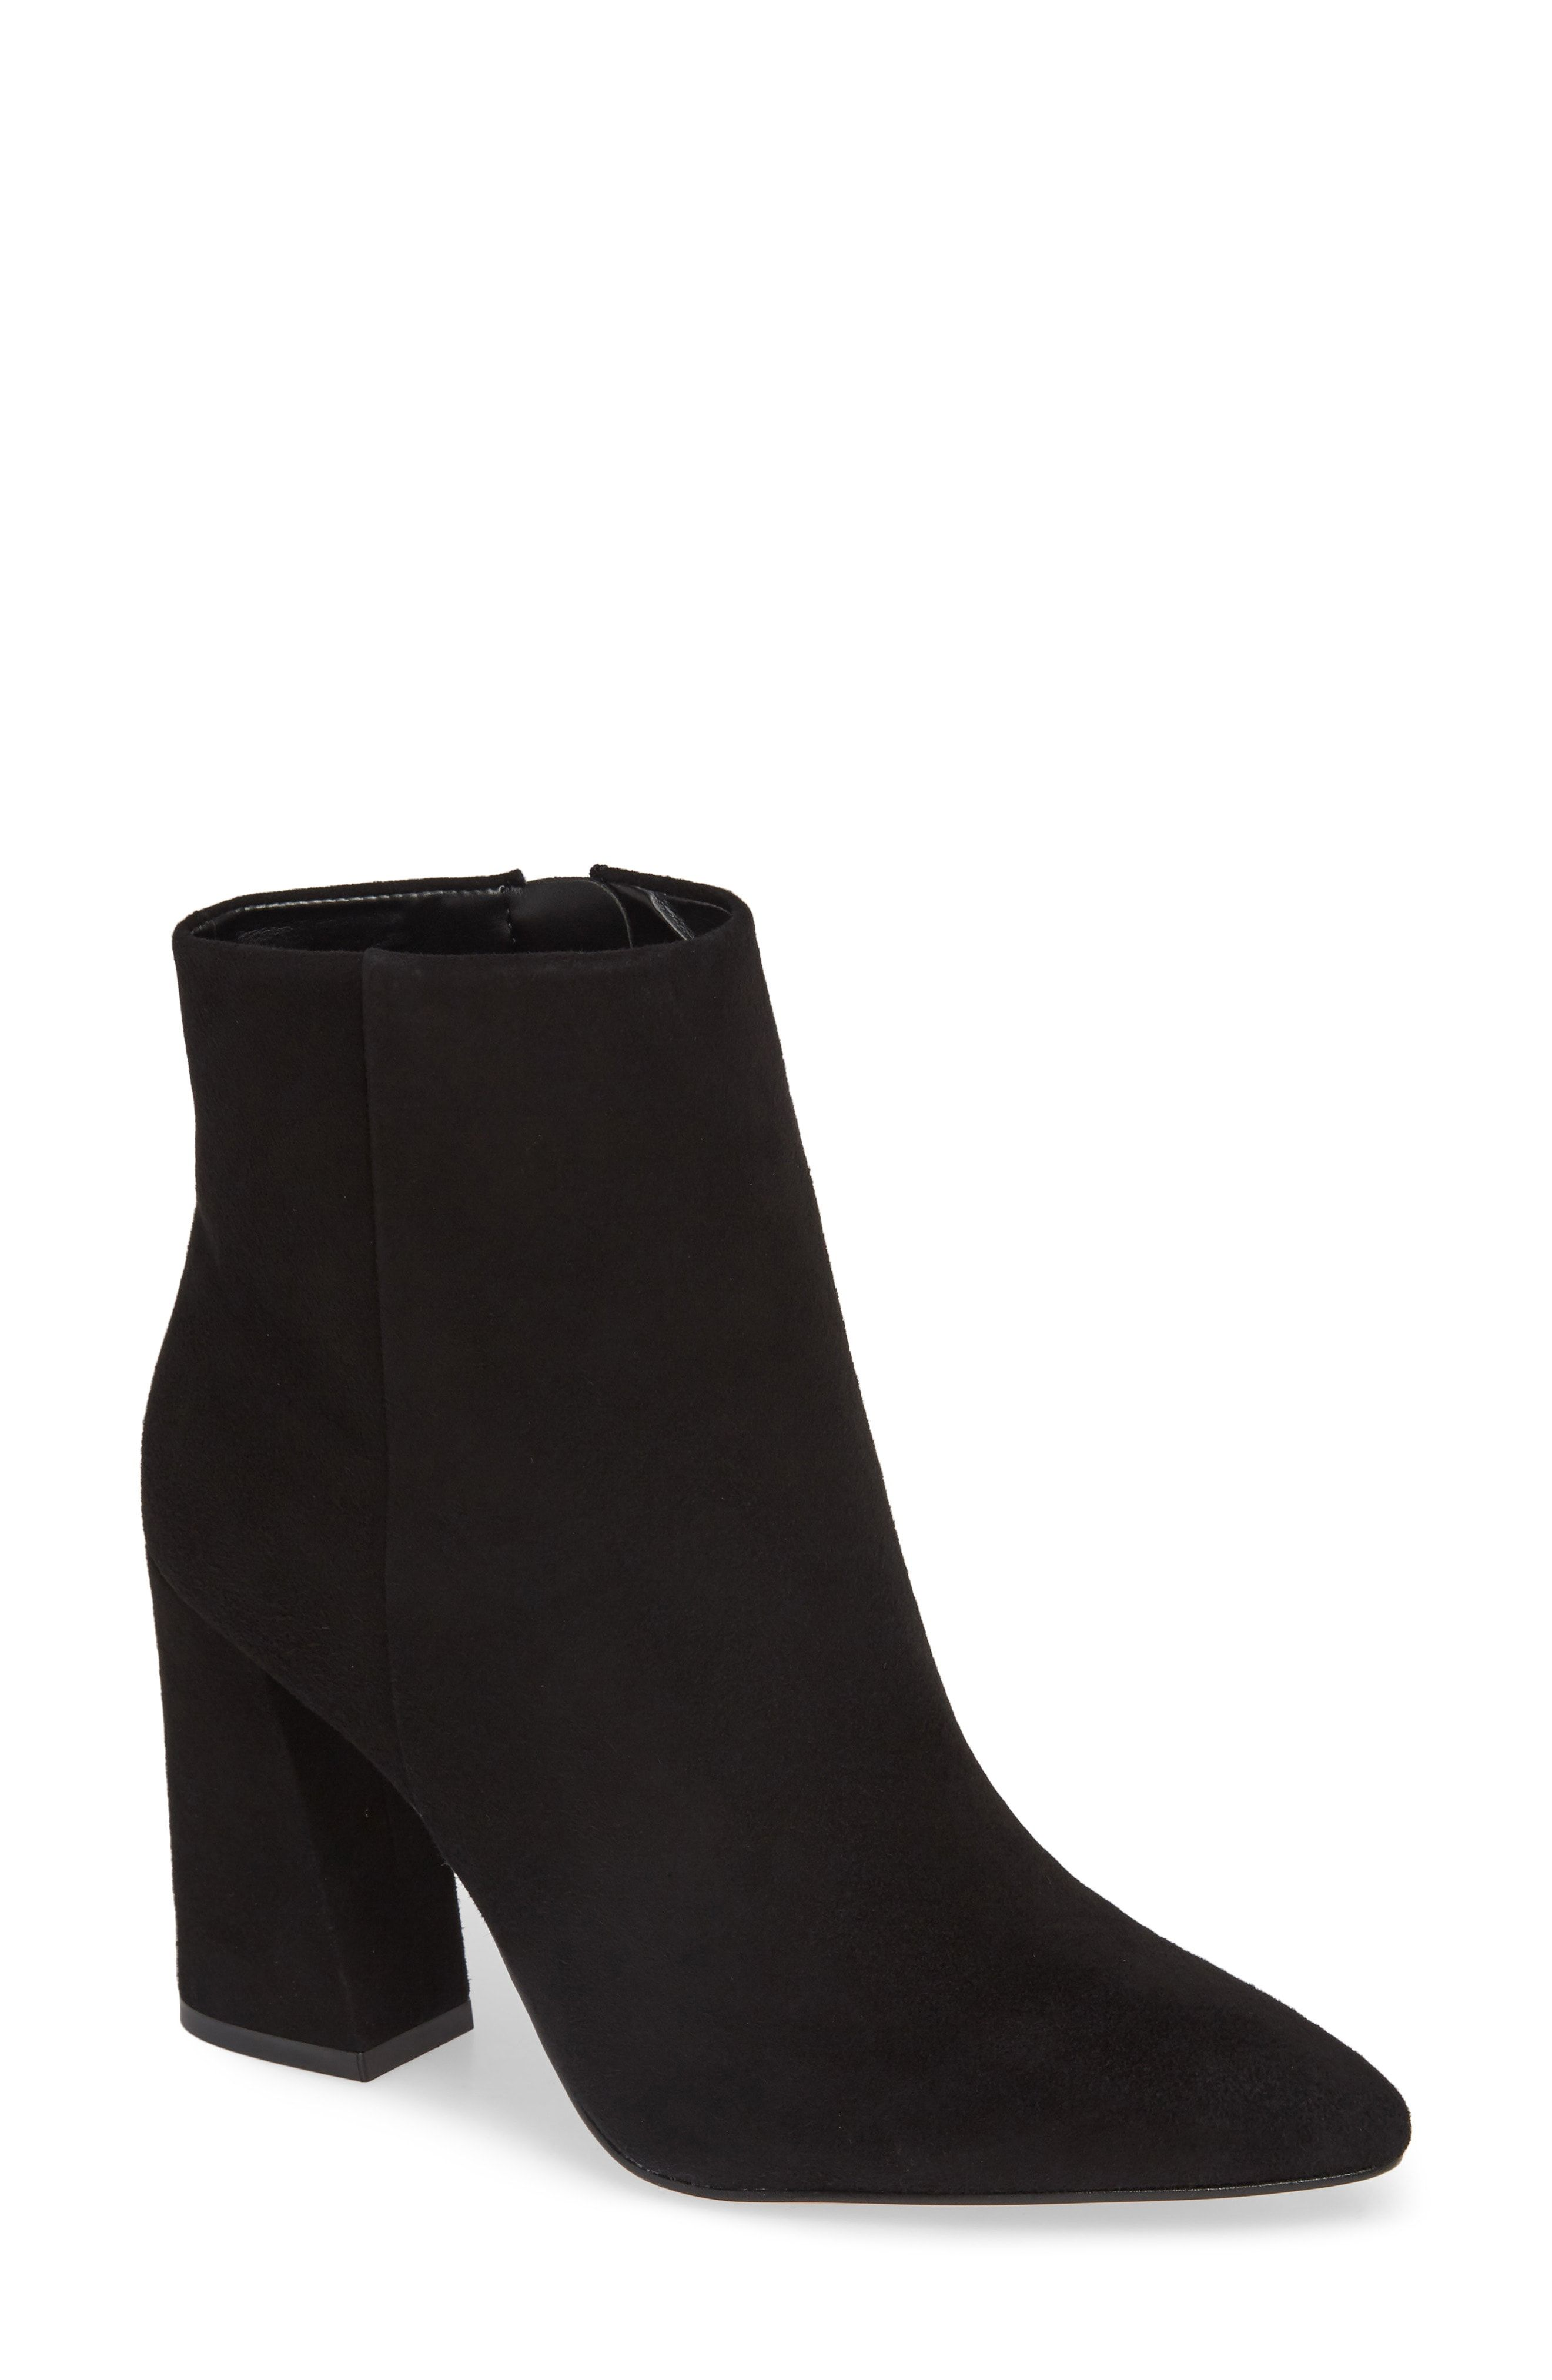 c8b5c513eba Vince Camuto Thelmin Bootie available at  Nordstrom